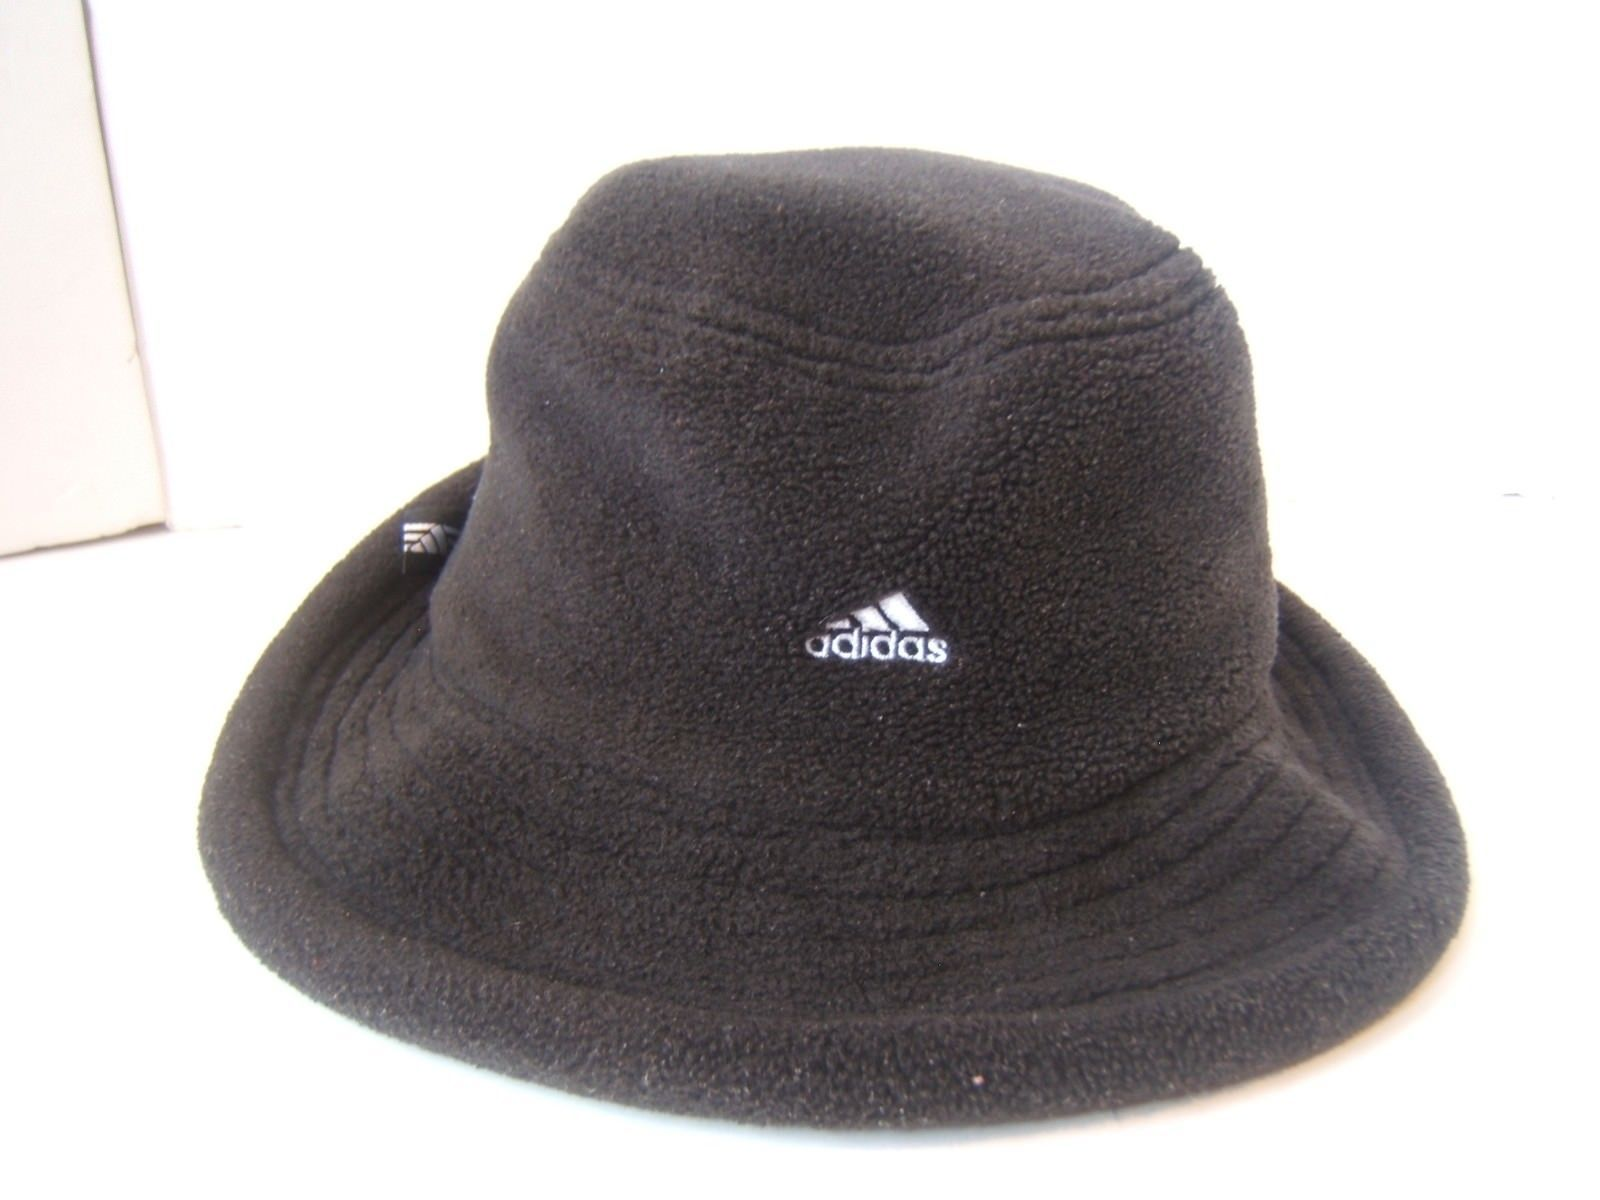 Adidas Spell Out Bucket Hat Medium Fitted Black Soft Fleece Unstructured Cap